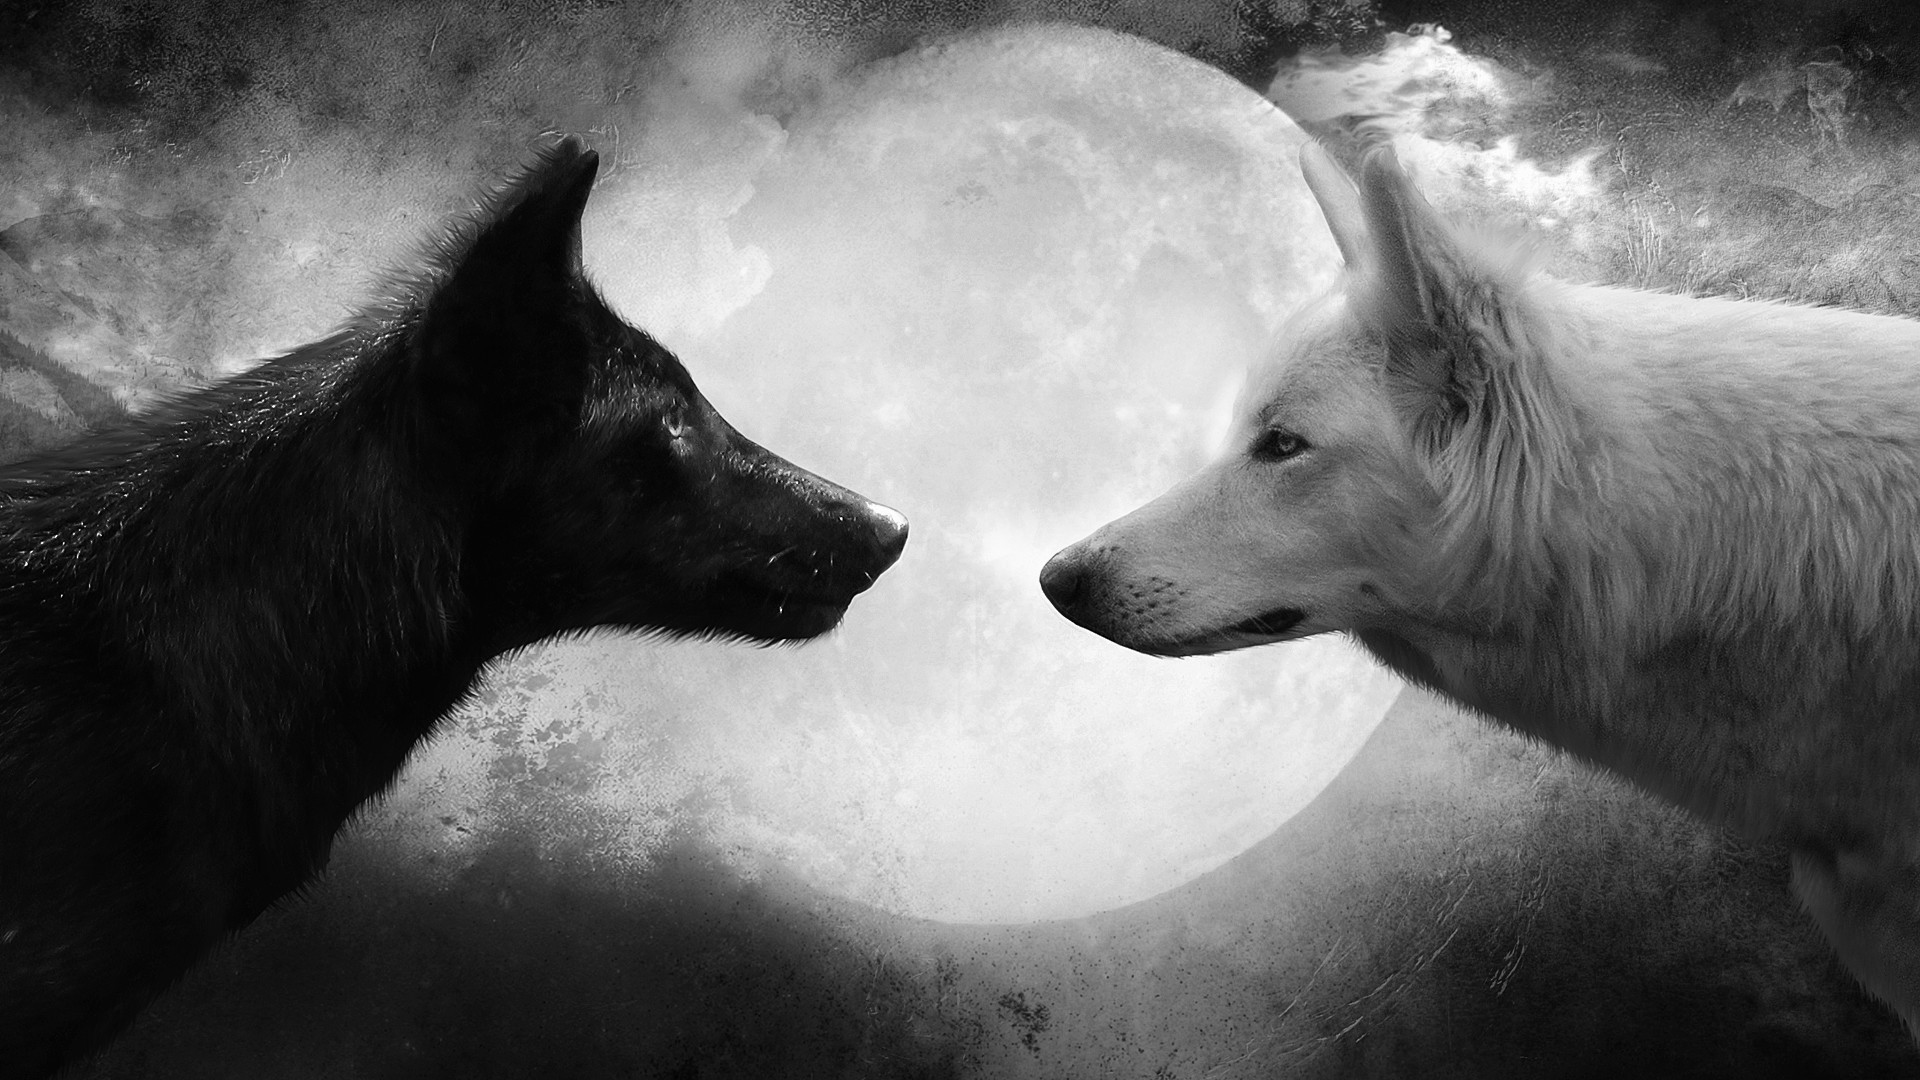 1920x1080 Black and White Wolf Wallpaper HD.